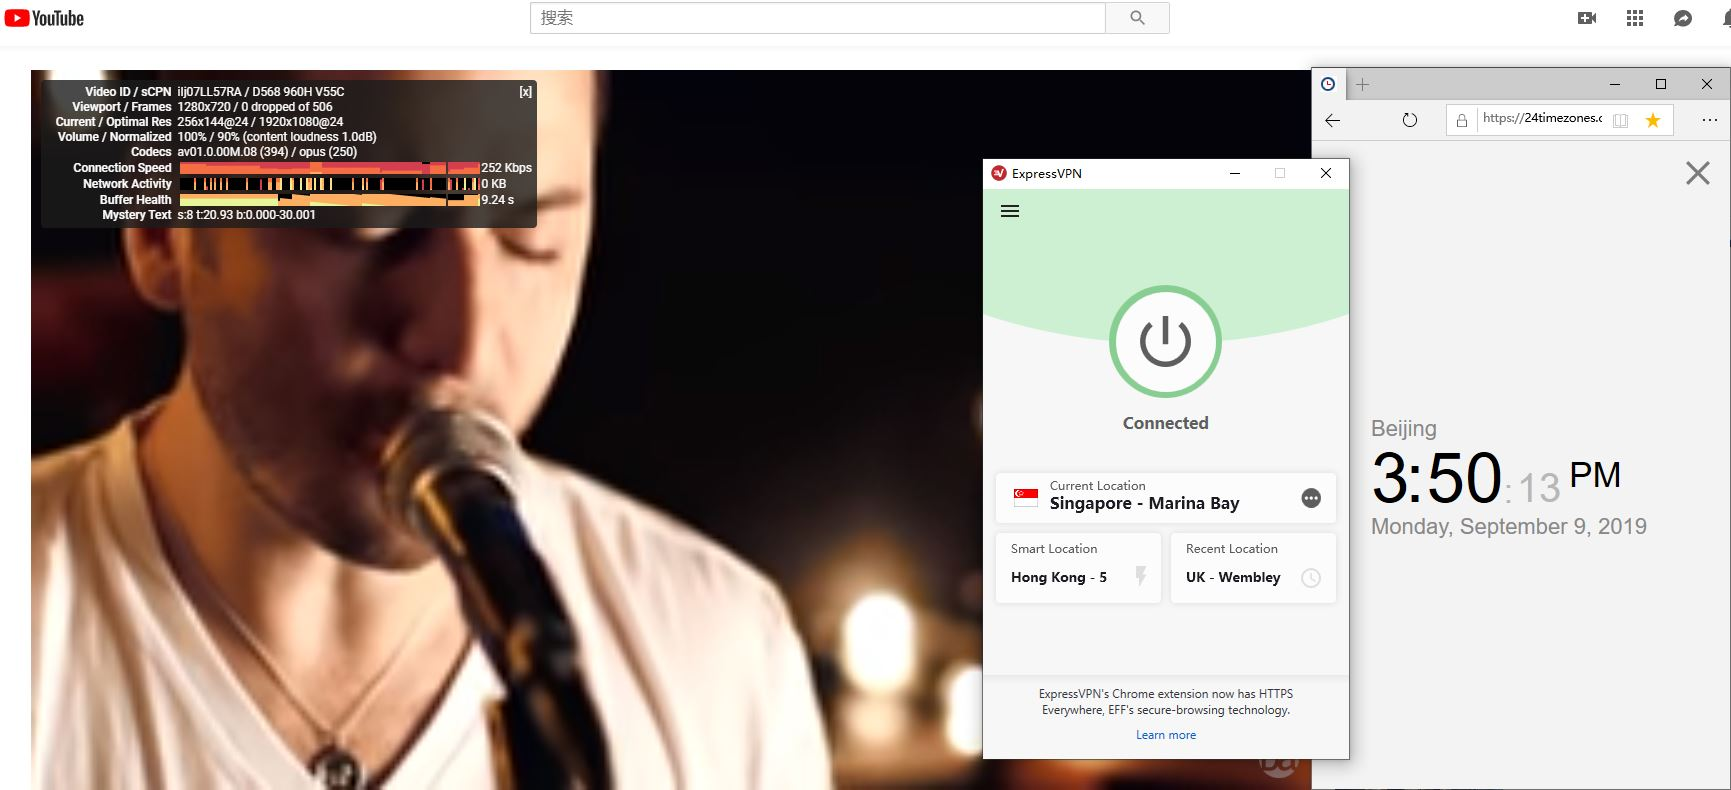 windows ExpressVPN singapore-marina bay 服务器 中国VPN翻墙 科学上网 YouTube速度测试-20190909